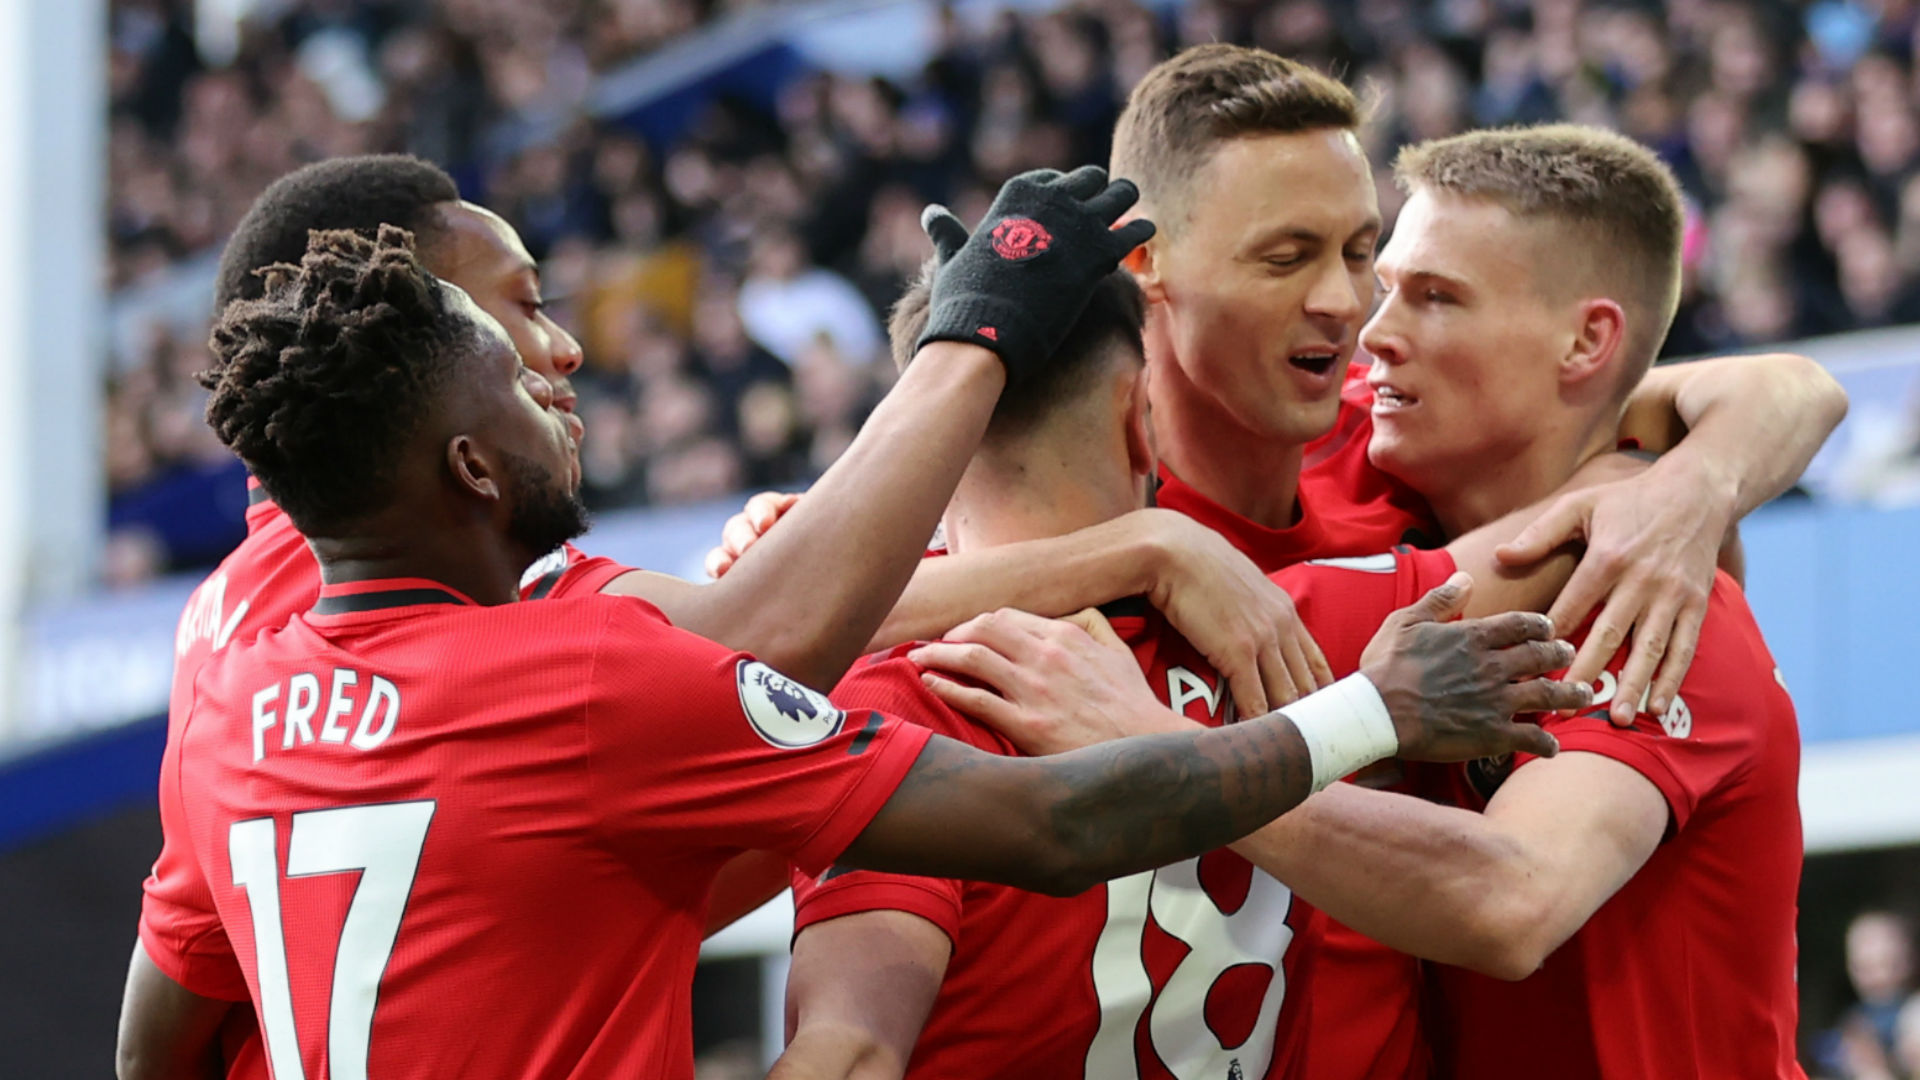 Lask Vs Manchester United How To Watch In Malaysia Singapore Philippines Tv Channel Free Live Stream Kickoff Time And Squad News Goal Com